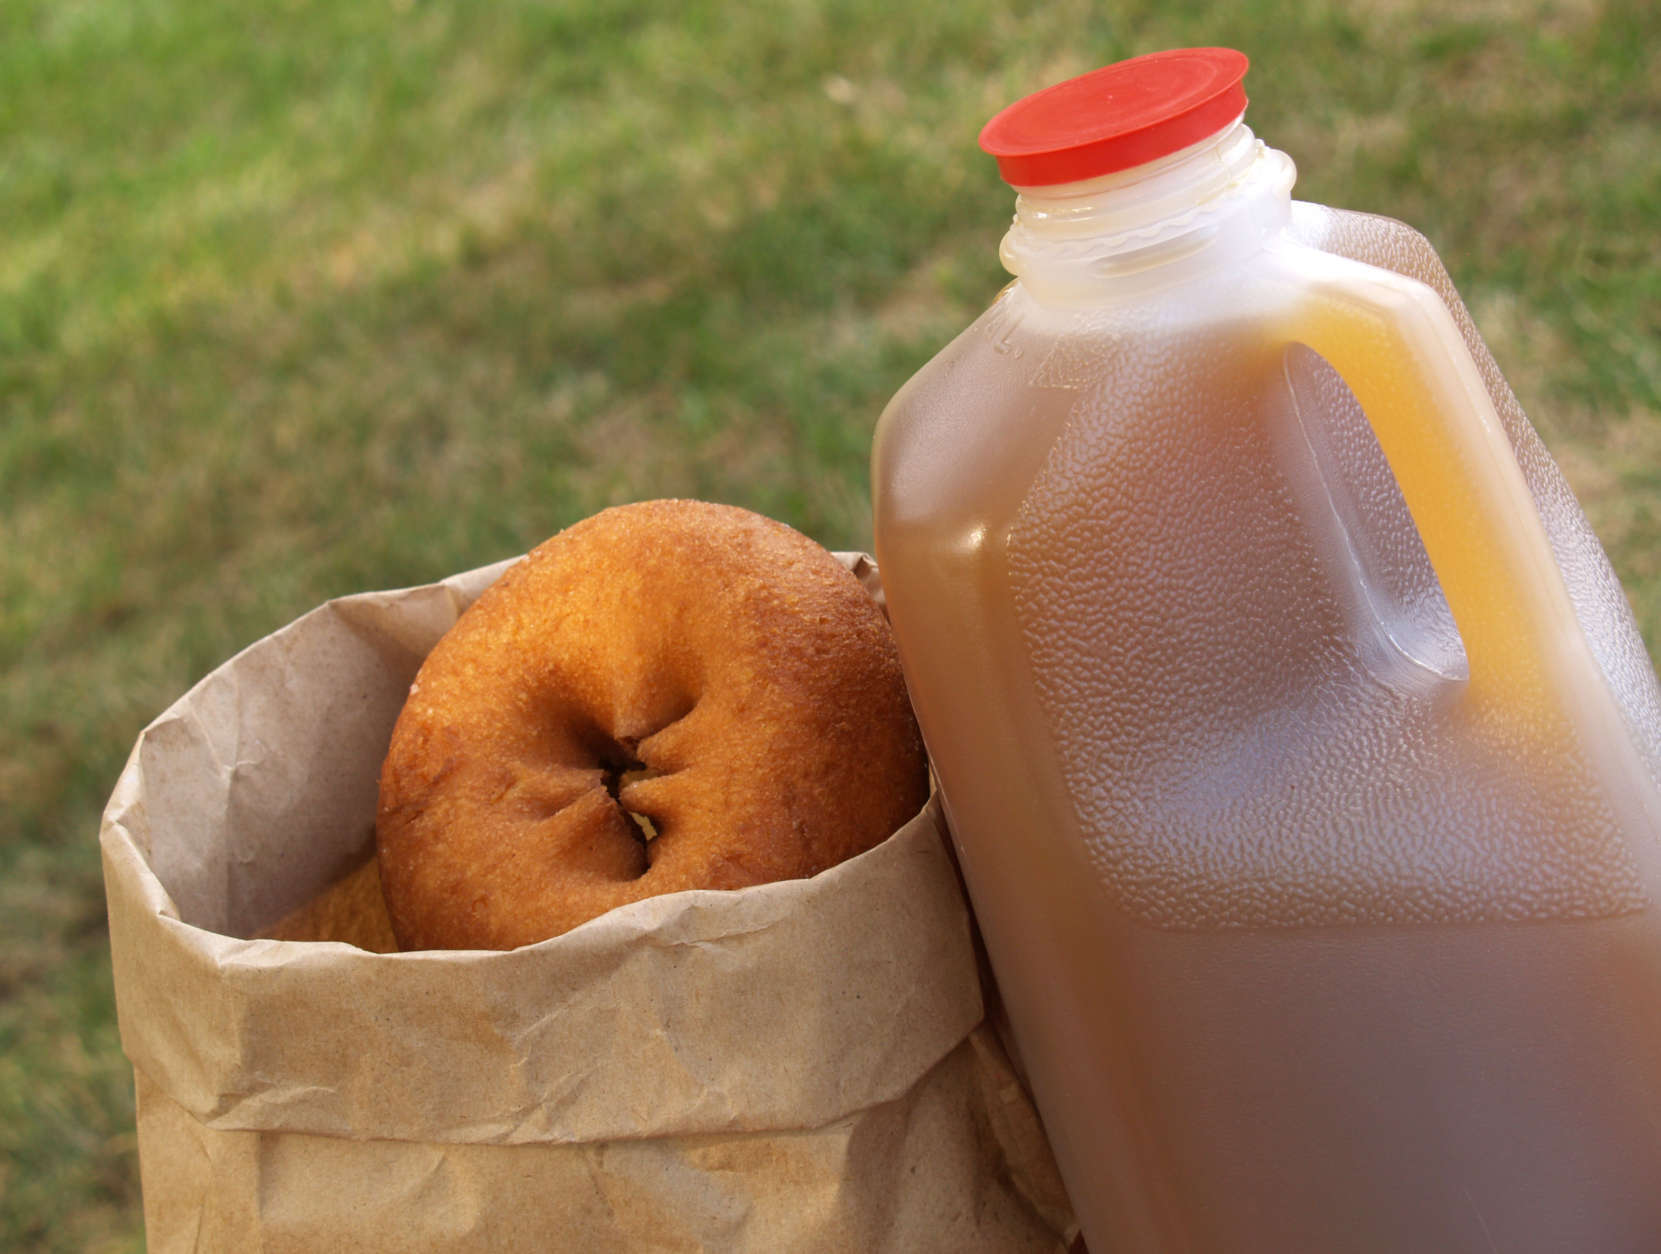 a half-gallon of apple cider beside a bag of donuts